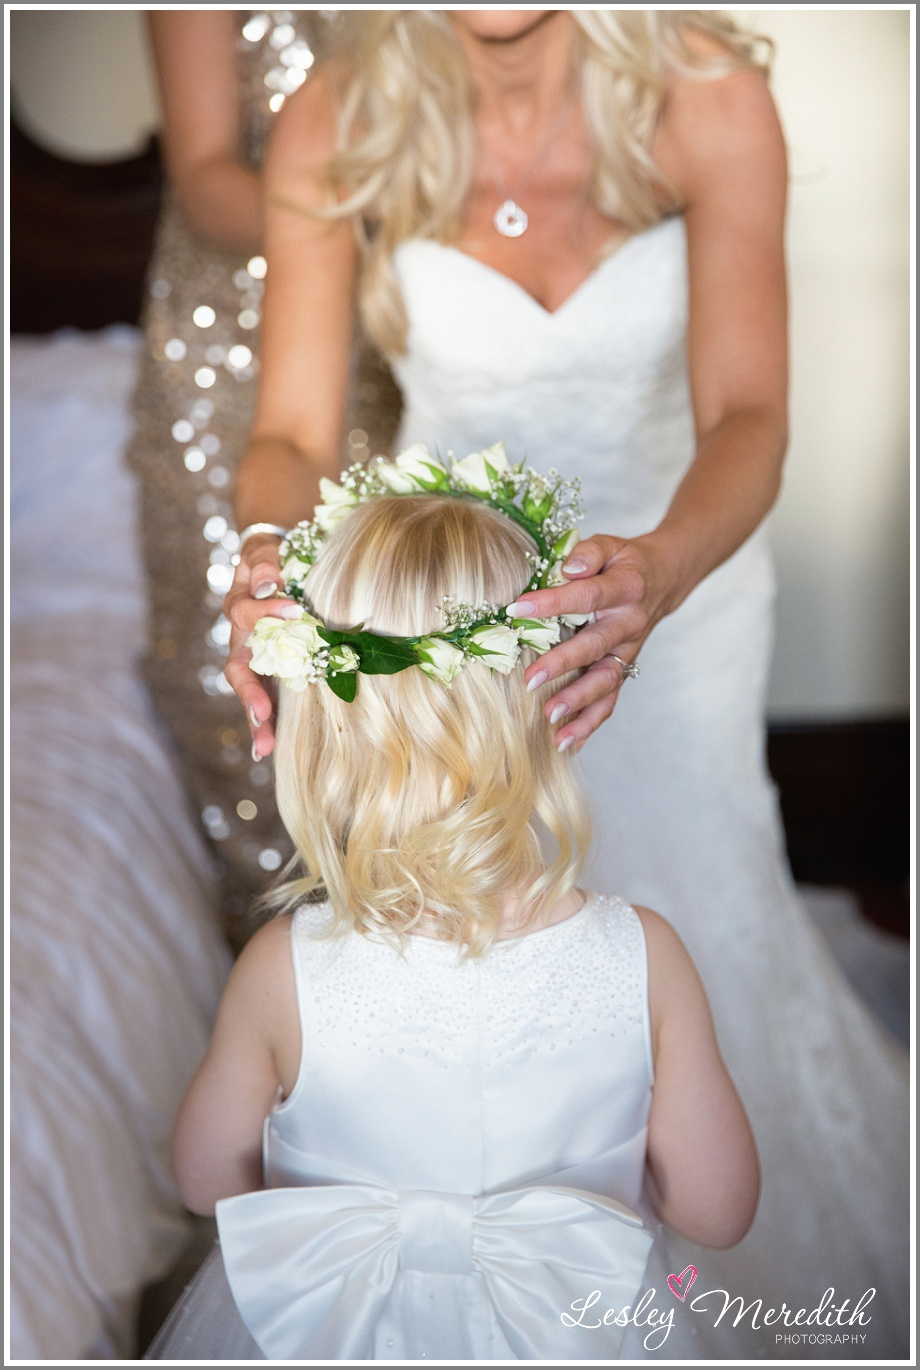 Julie and Jessica final touches at Peckforton Castle